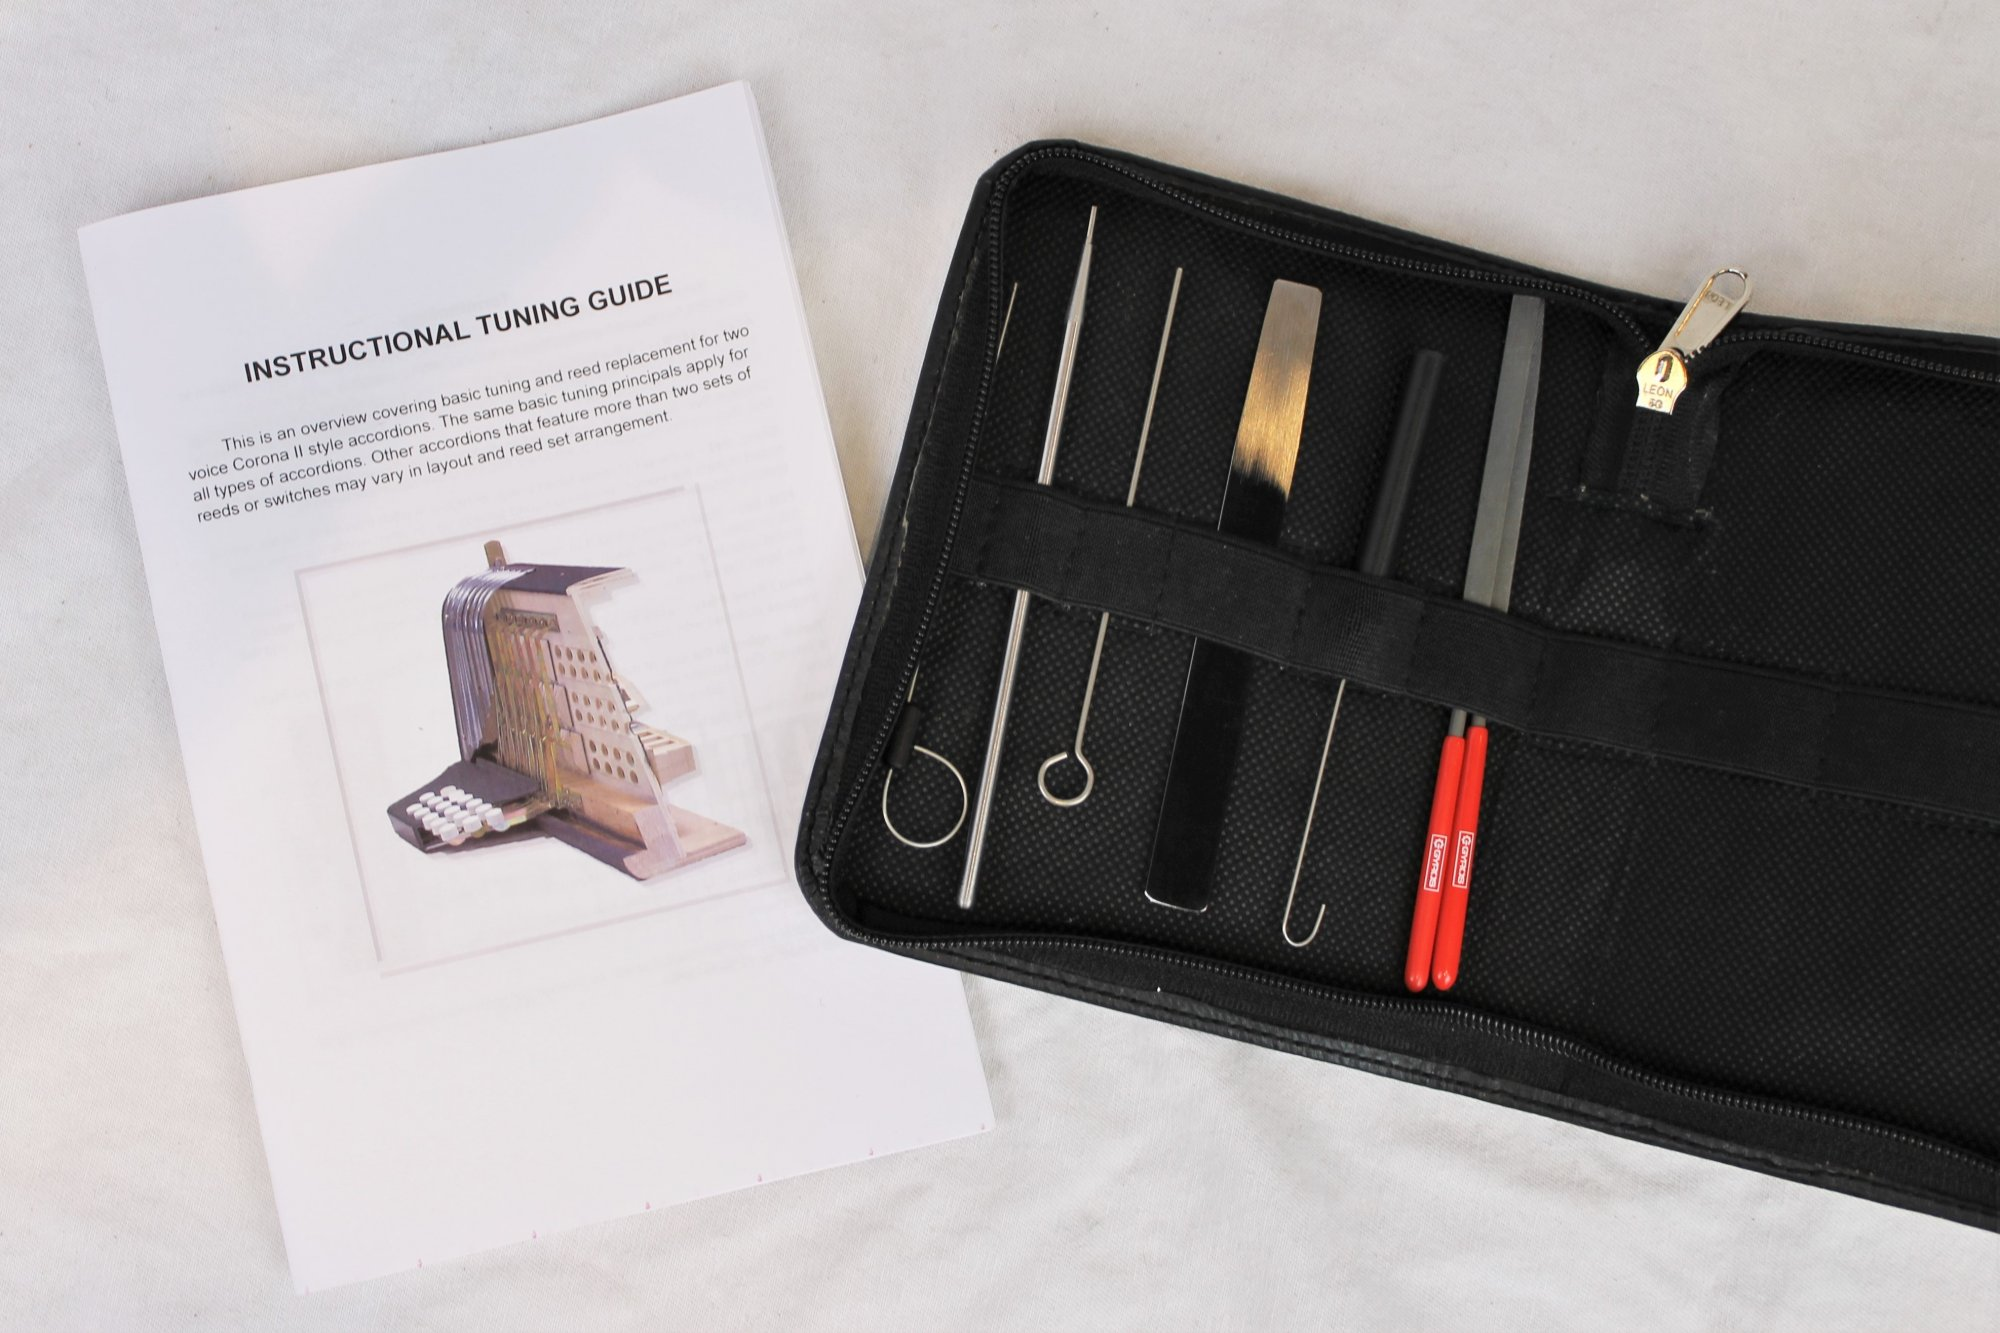 Accordion and Concertina Reed Tuning Kit - Tools and Instructions to Tune Your Free Reed Instrument Melodica Harmonica Organ